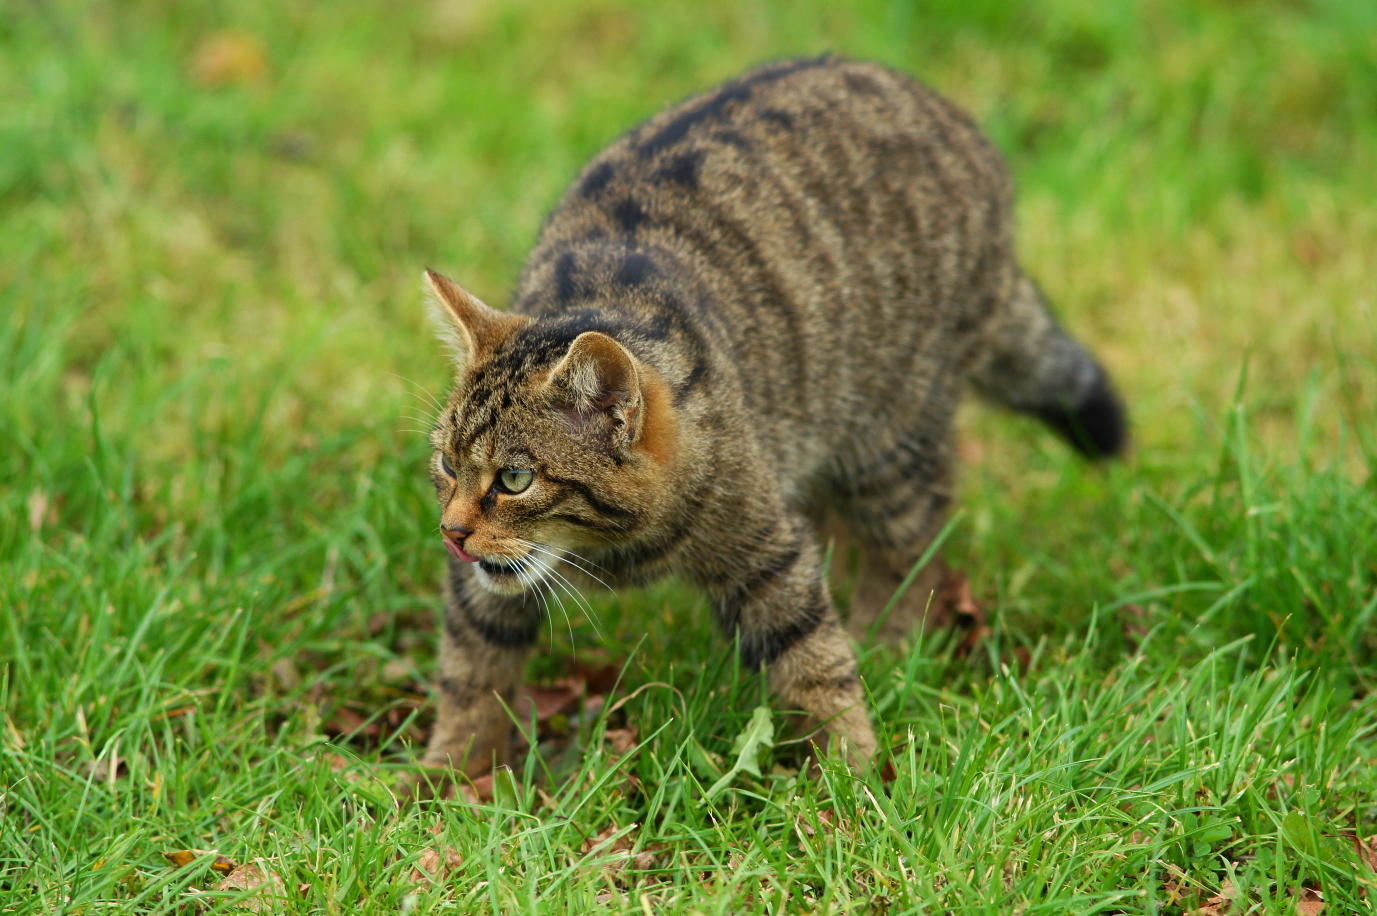 Scottish Wildcat by Peter Trimming Wikimedia Commons